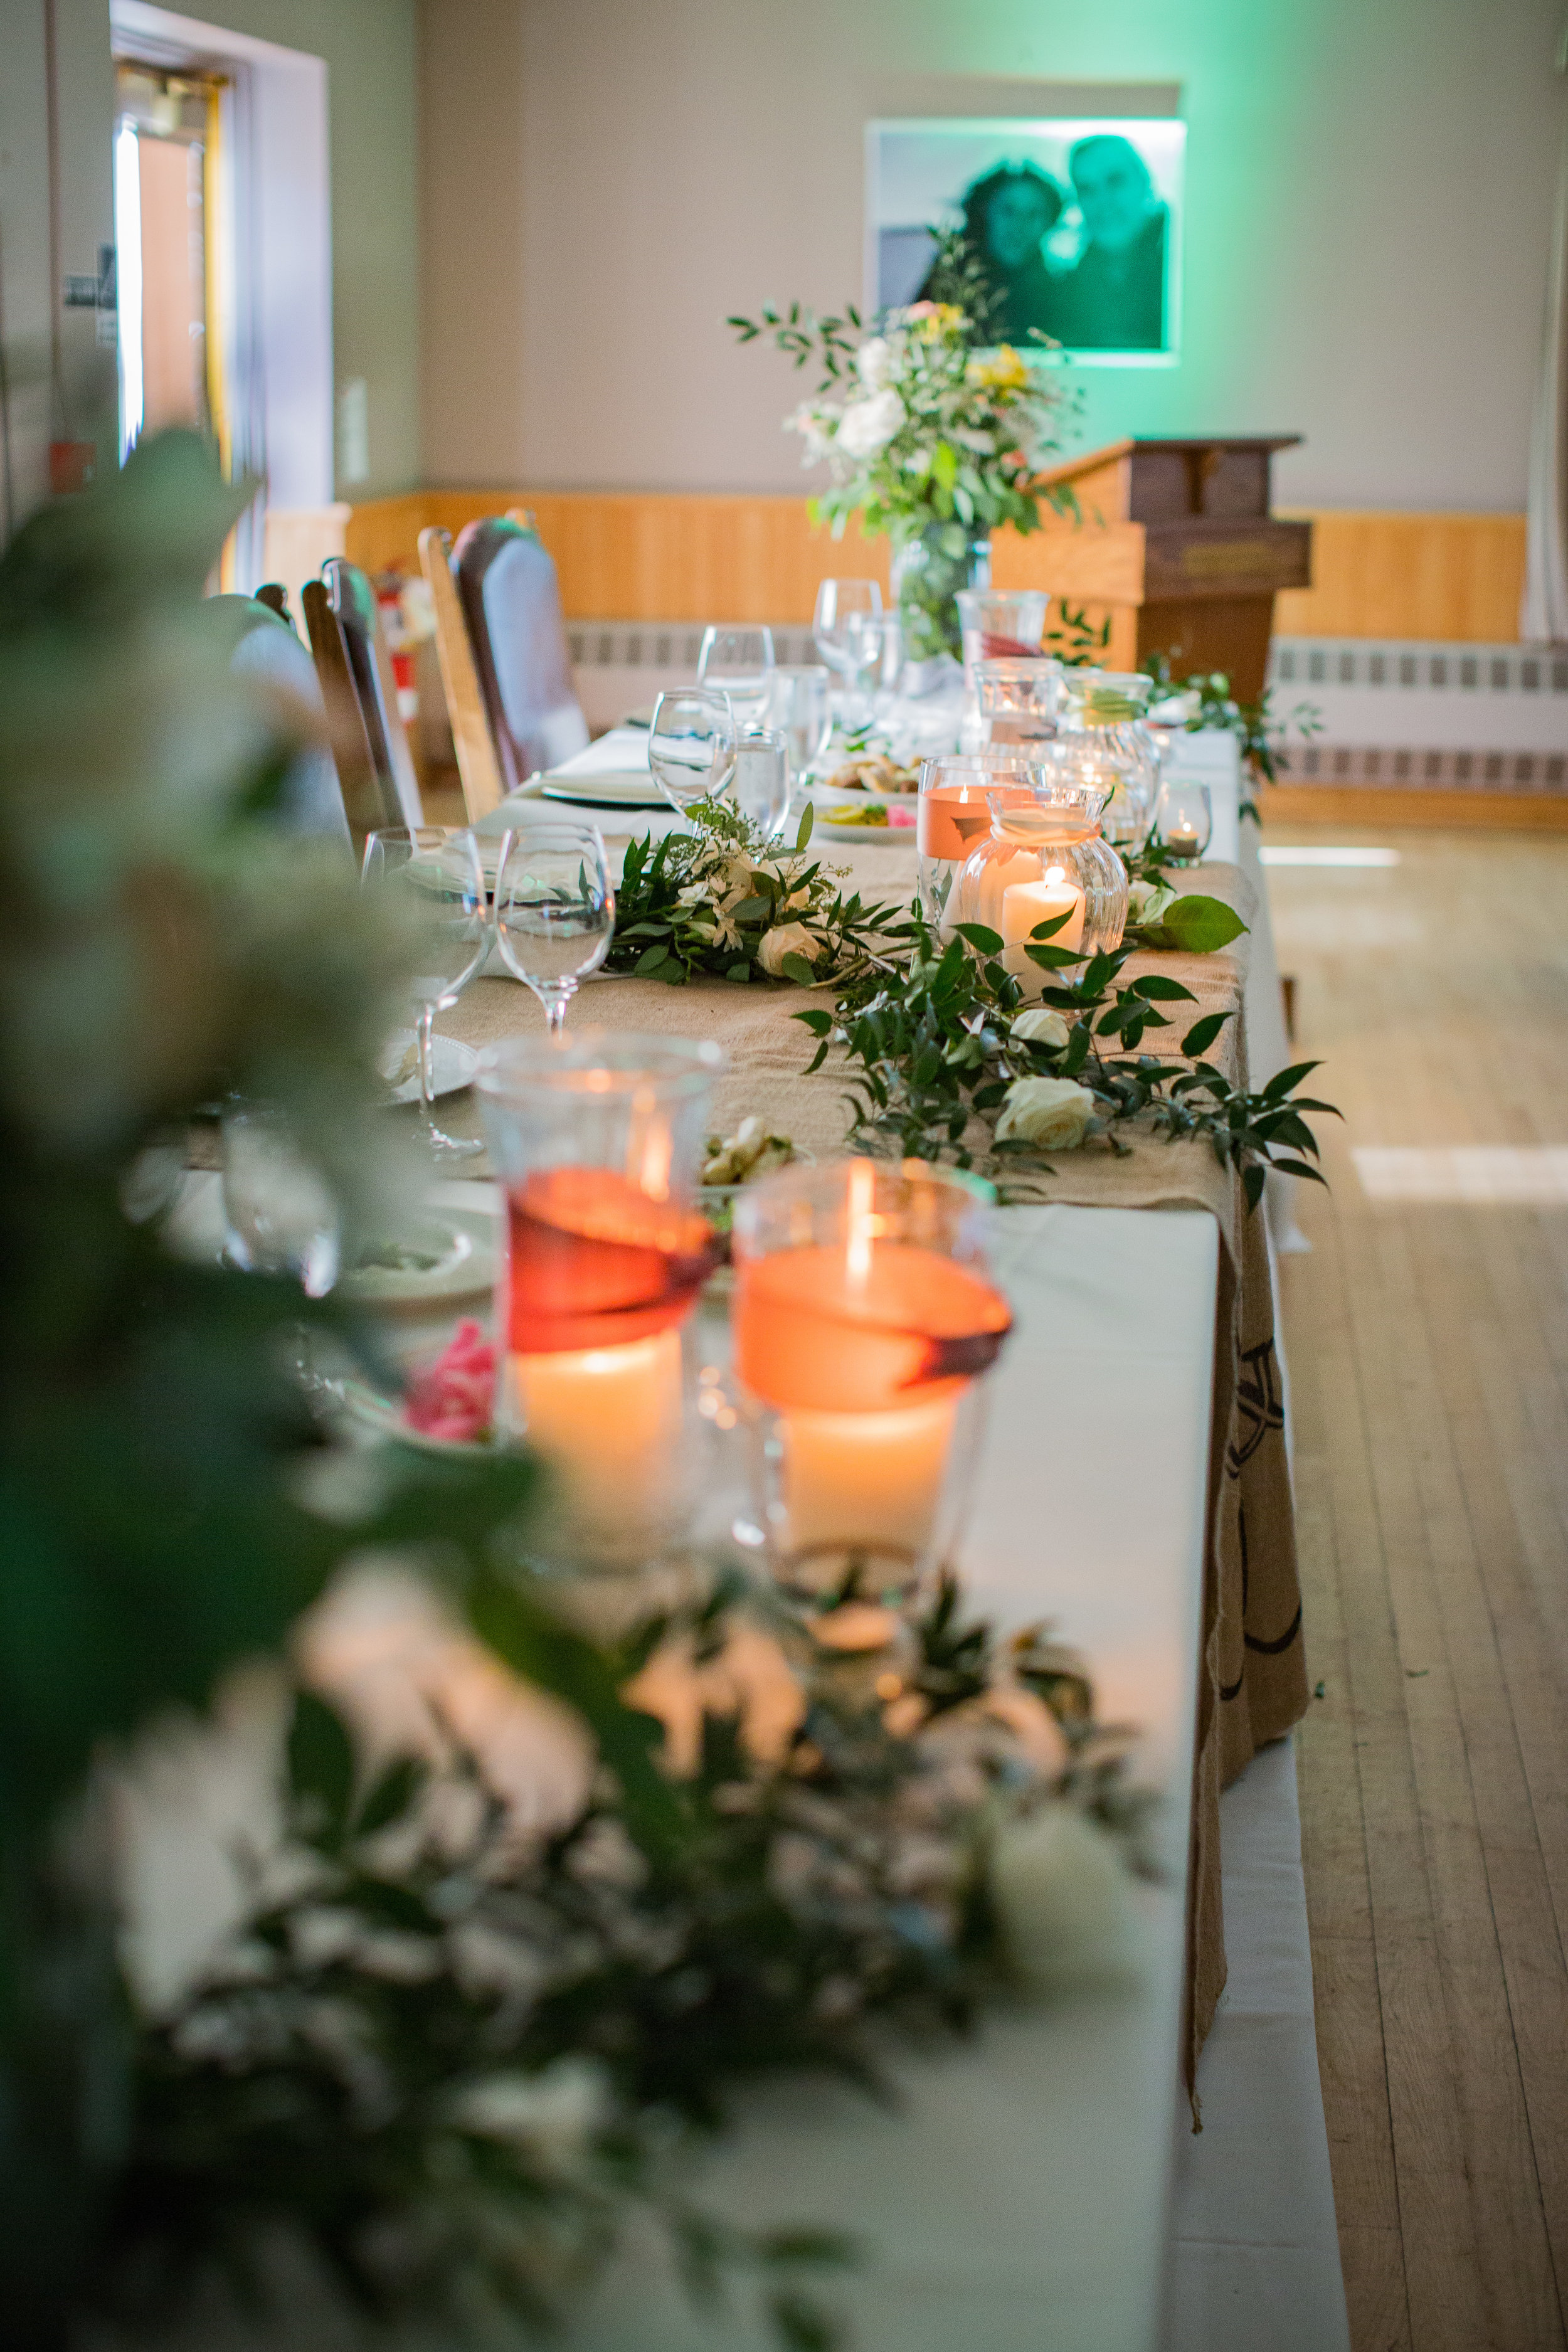 Halos - Jean Wedding - 02 July 2016 - The Celebration - 015.JPG